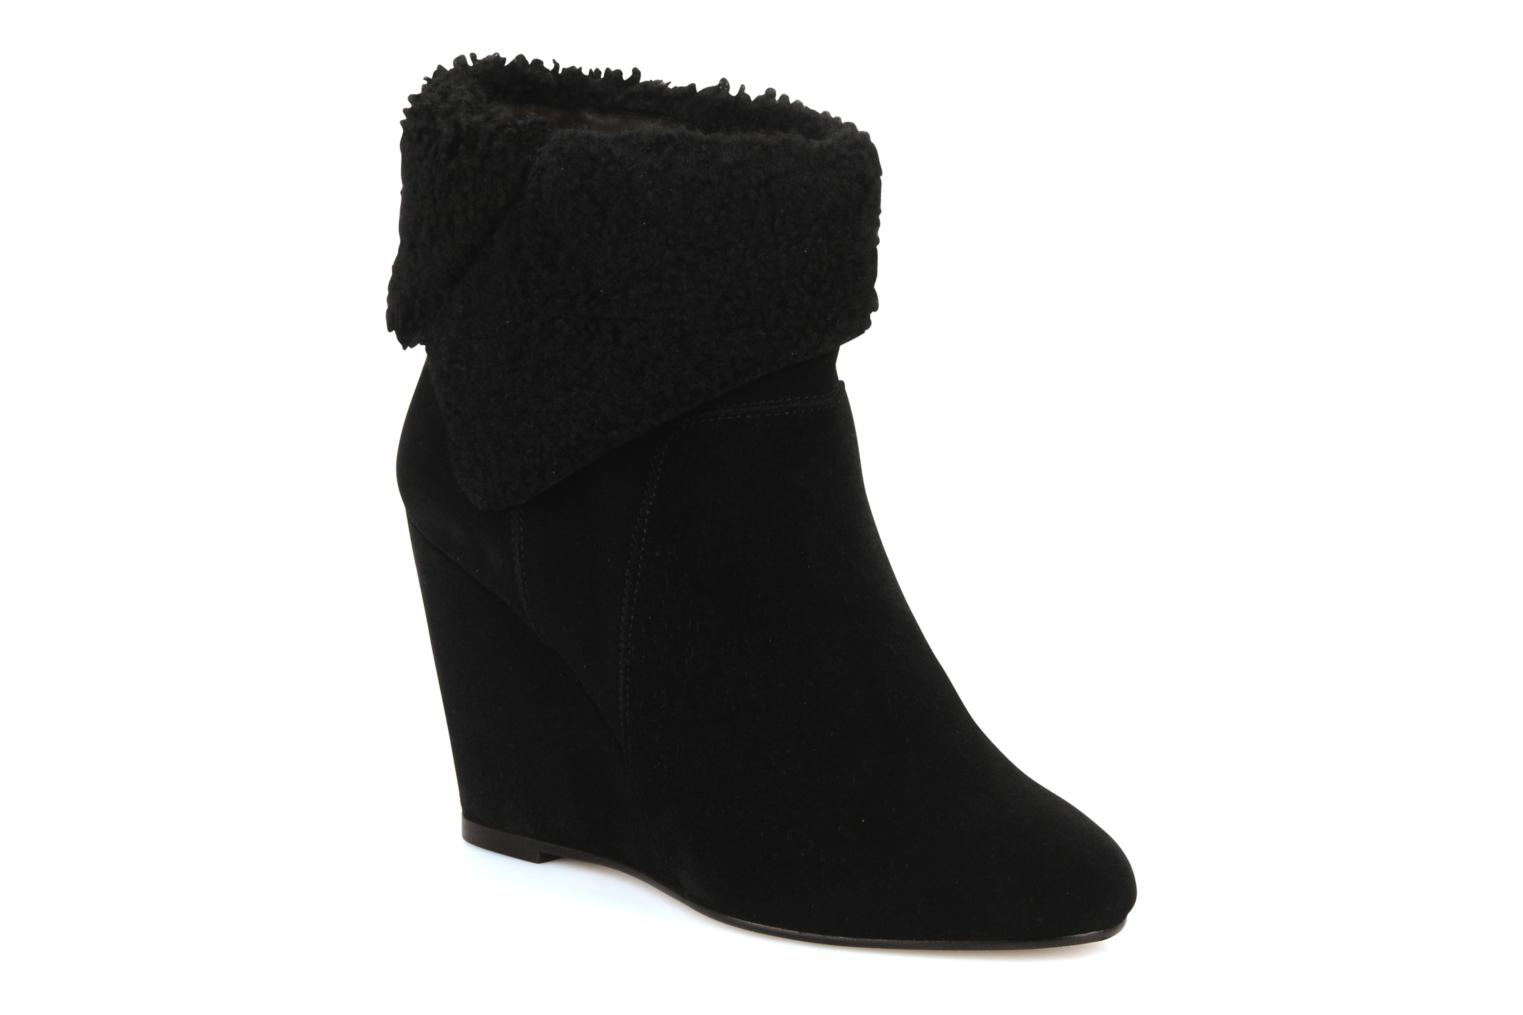 Bottines et boots Tila March Wedge booty origami sherling Noir vue détail/paire